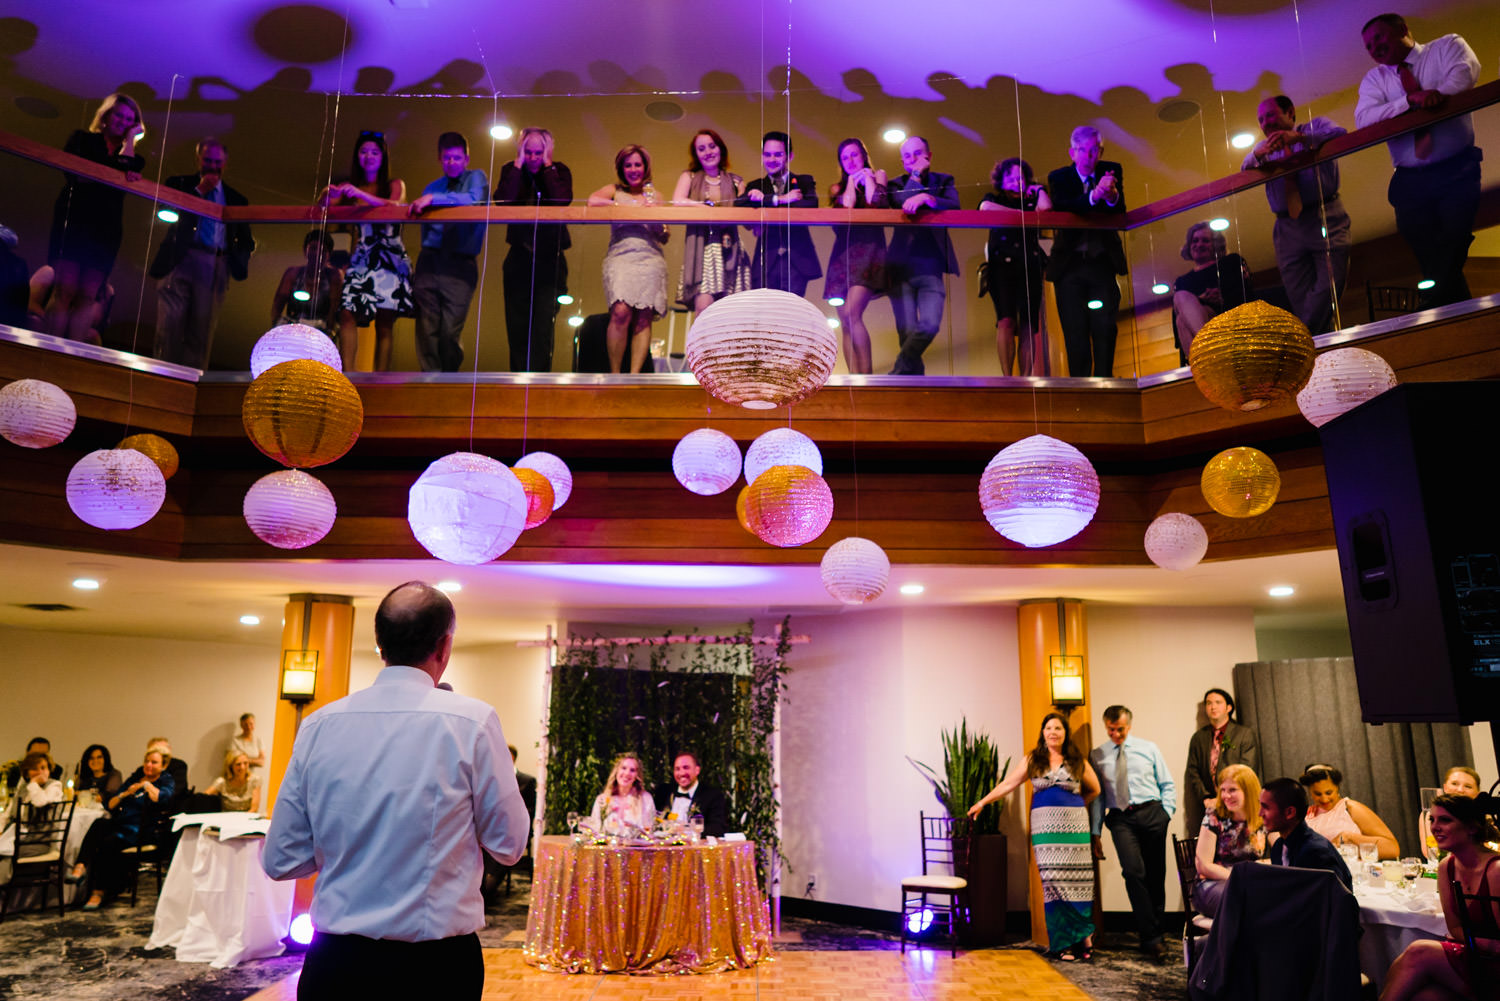 Wedding at Snowbird Cliff Lodge reception at the Golden Cliff photo